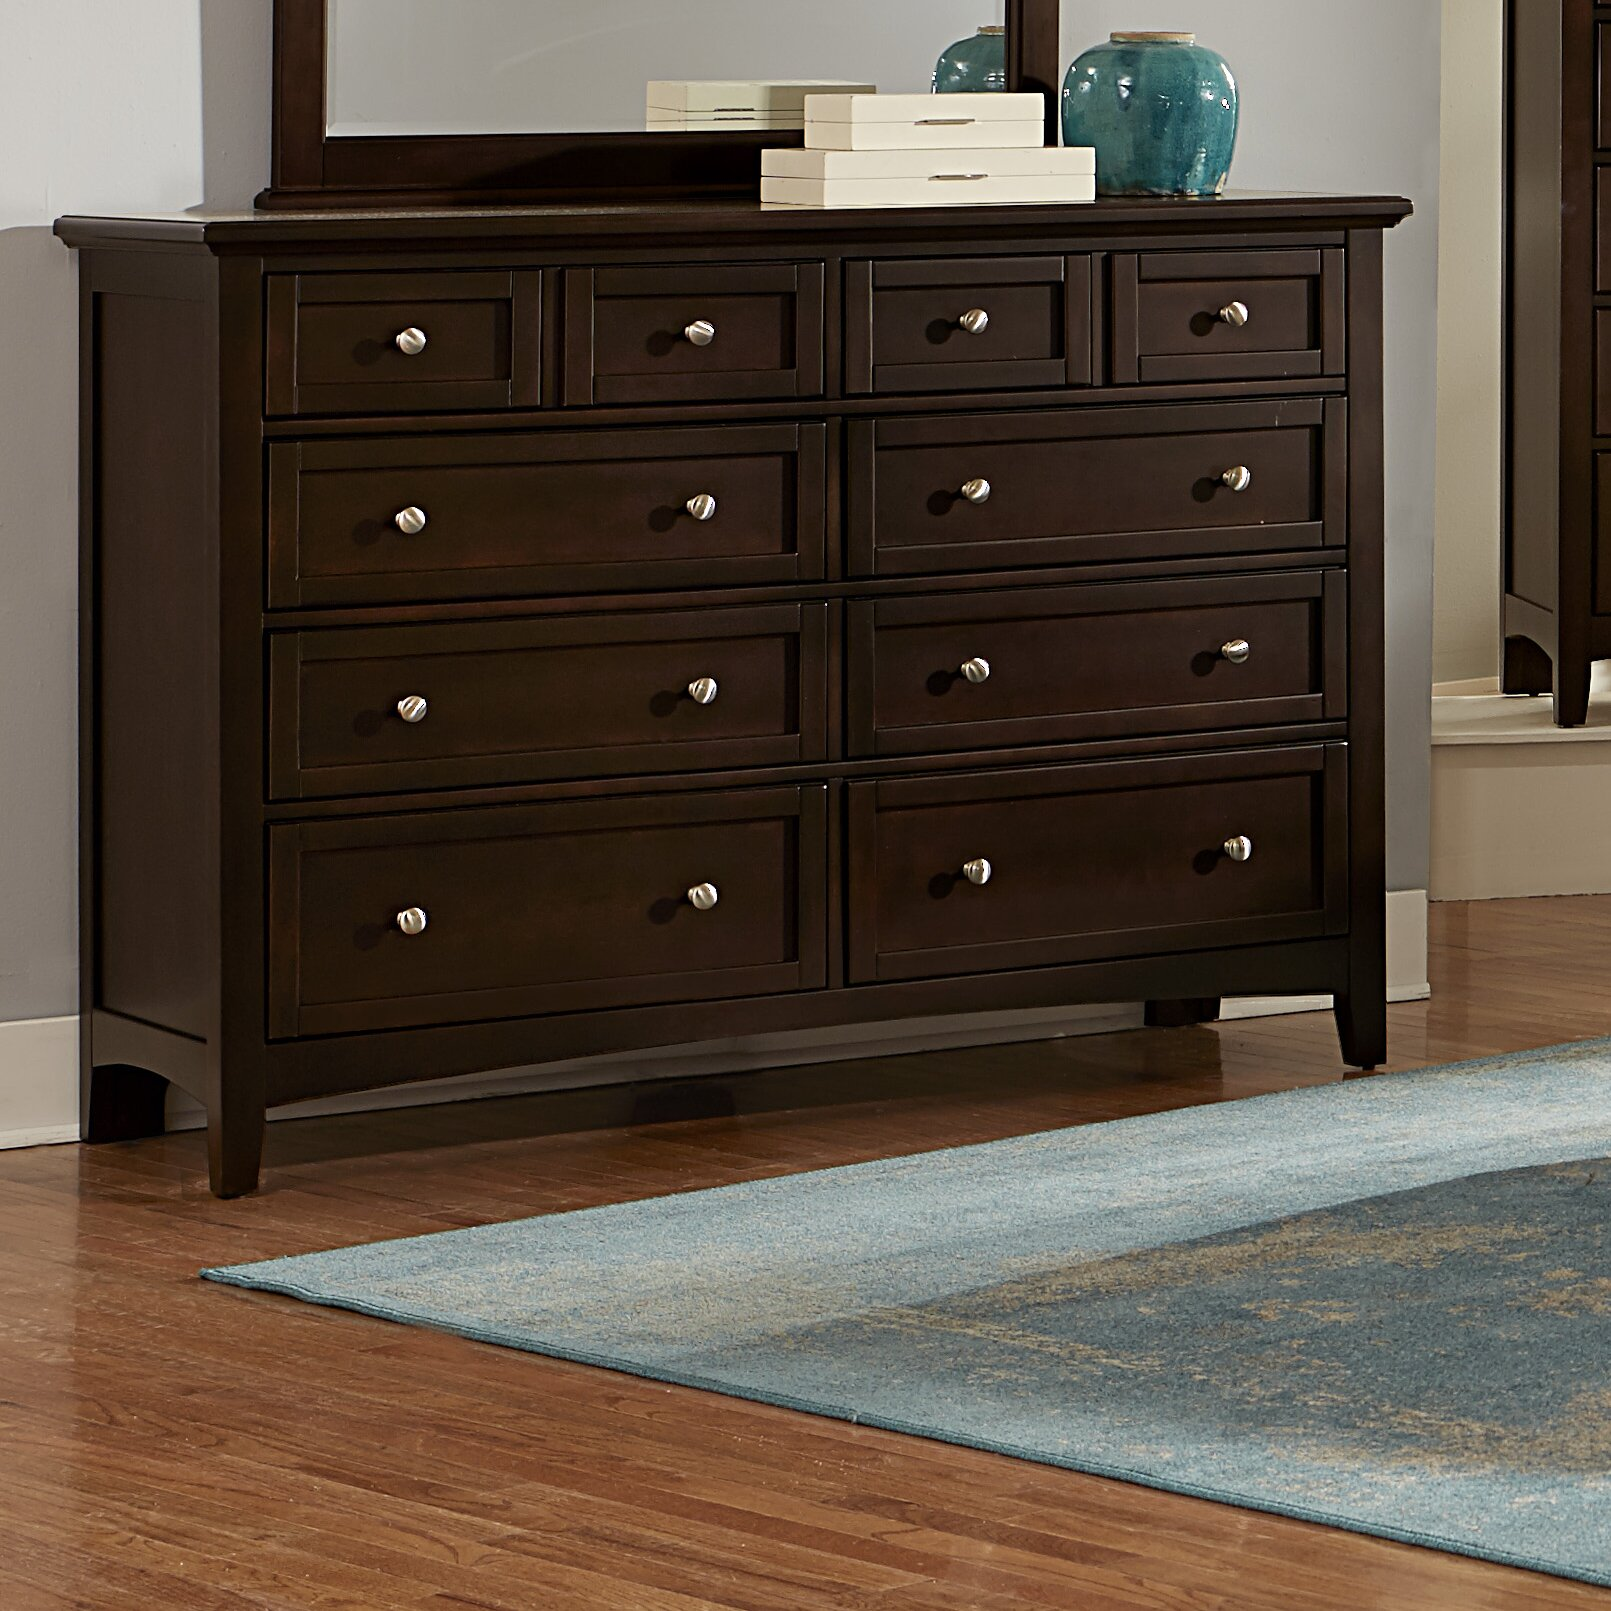 Darby Home Co Gastelum 8 Drawer Double Dresser Amp Reviews